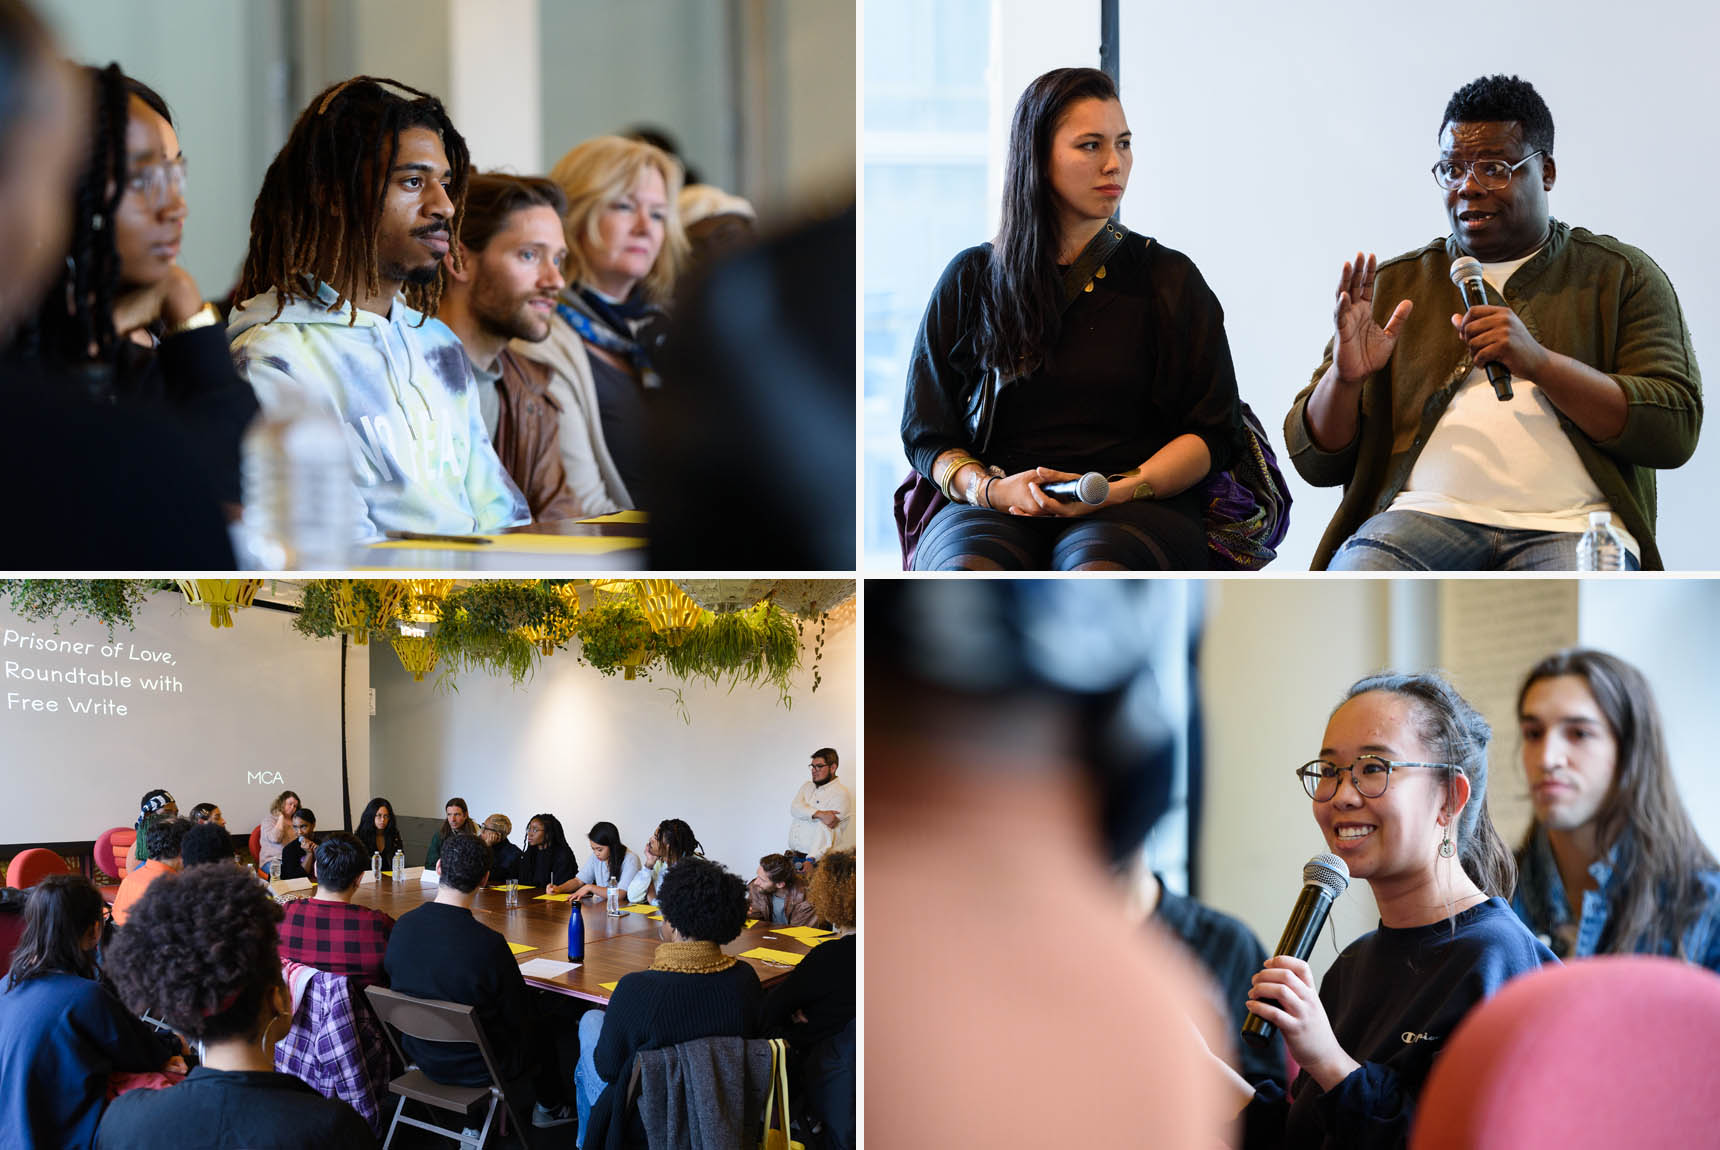 Panel and round-table discussions at the Museum of Contemporary Art Chicago - Event Photography by Michael Courier